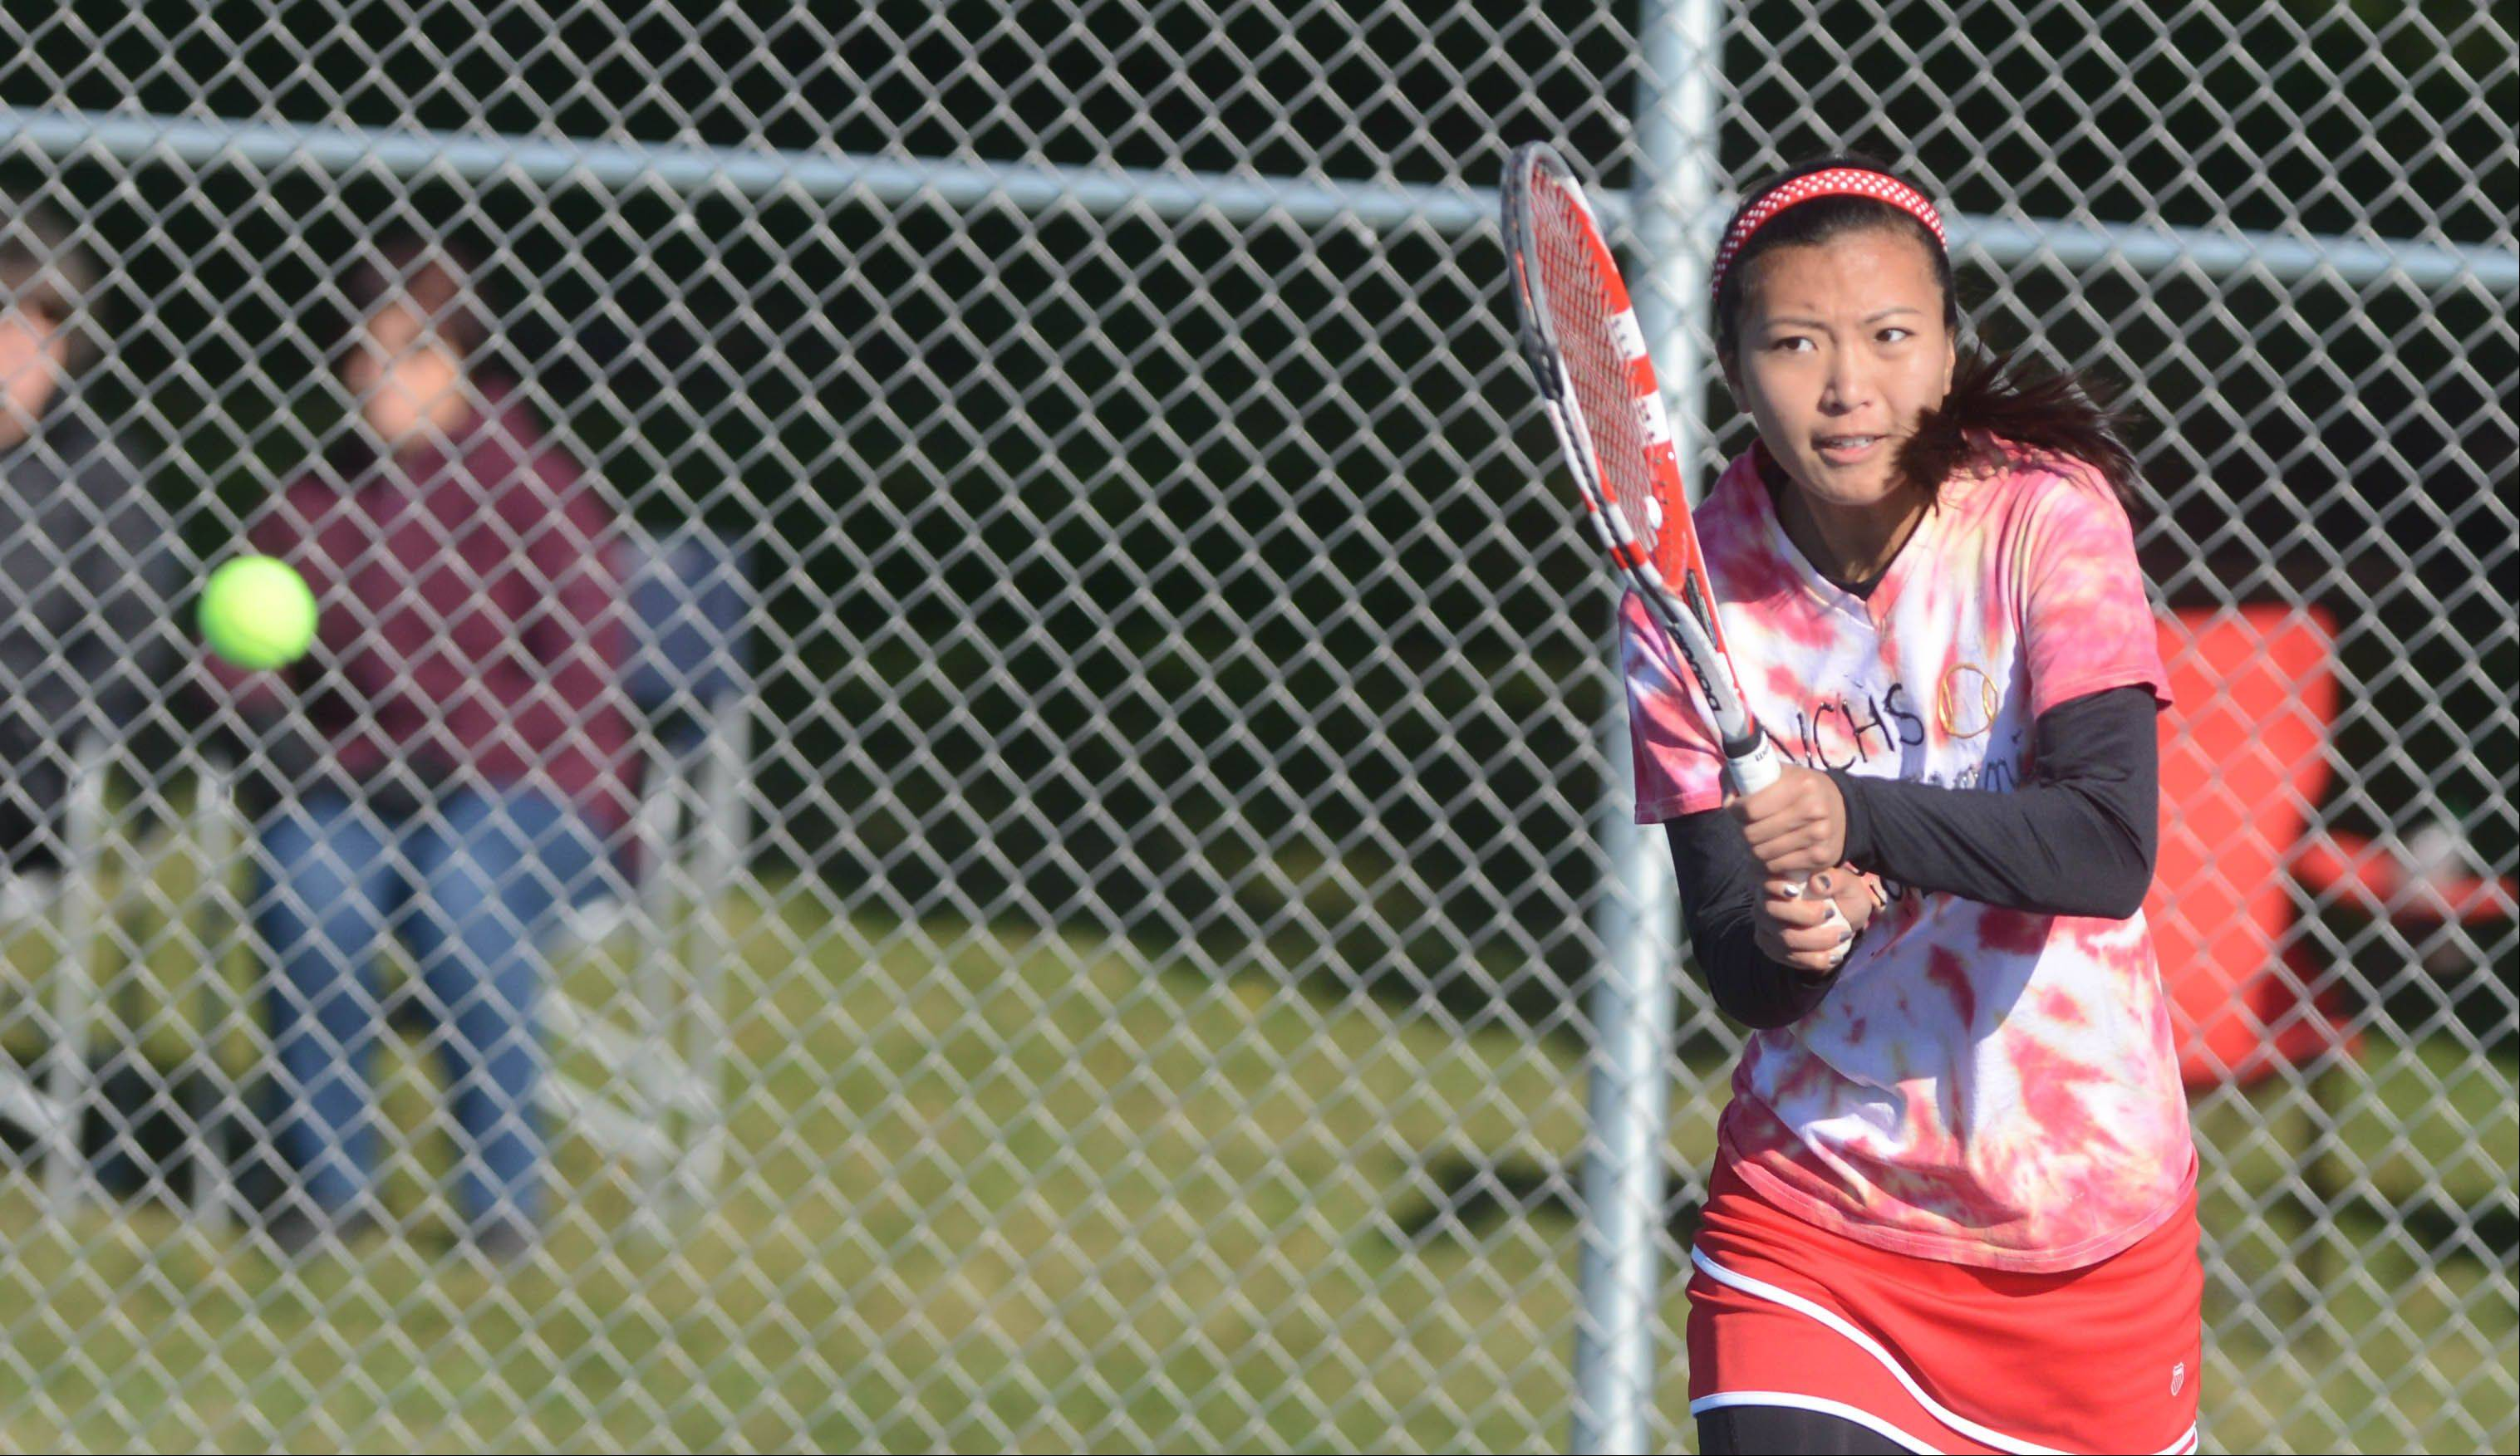 Cindy Liu of Naperville Central takes a swing during the Naperville North girls tennis sectional Saturday. She was playing with teammate Cass Goldner.